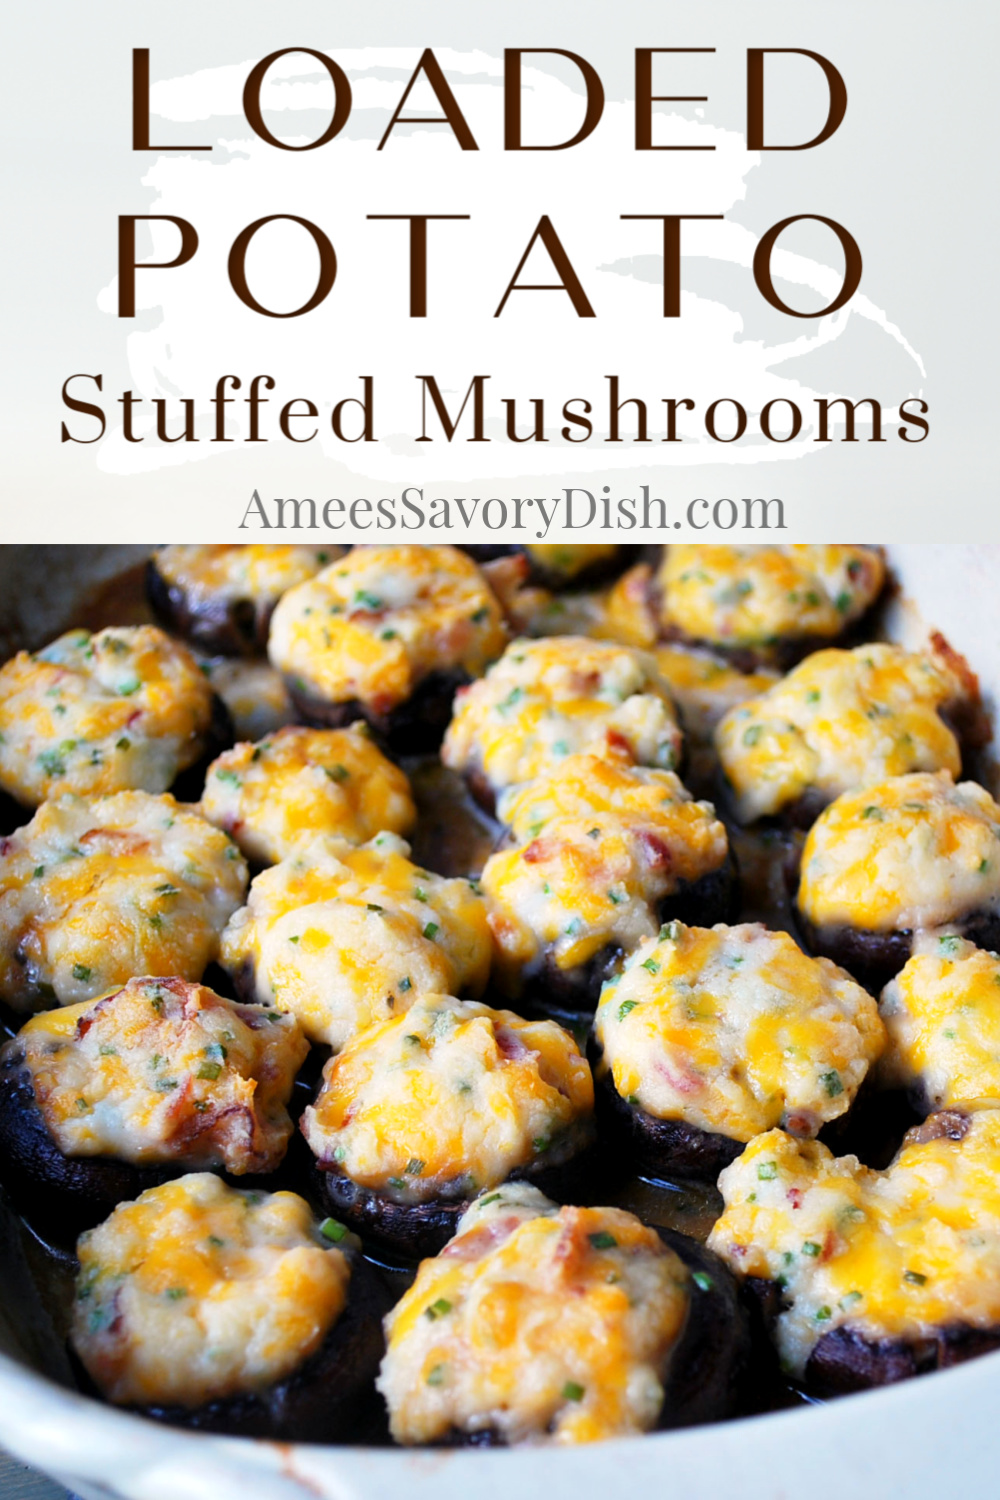 This loaded potato stuffed portobello mushrooms recipe is a fun twist on regular loaded baked potatoes made with baby portabellos and sharp cheddar cheese. #appetizer #stuffedmushrooms #stuffedportobellomushrooms #mushroomrecipe via @Ameessavorydish